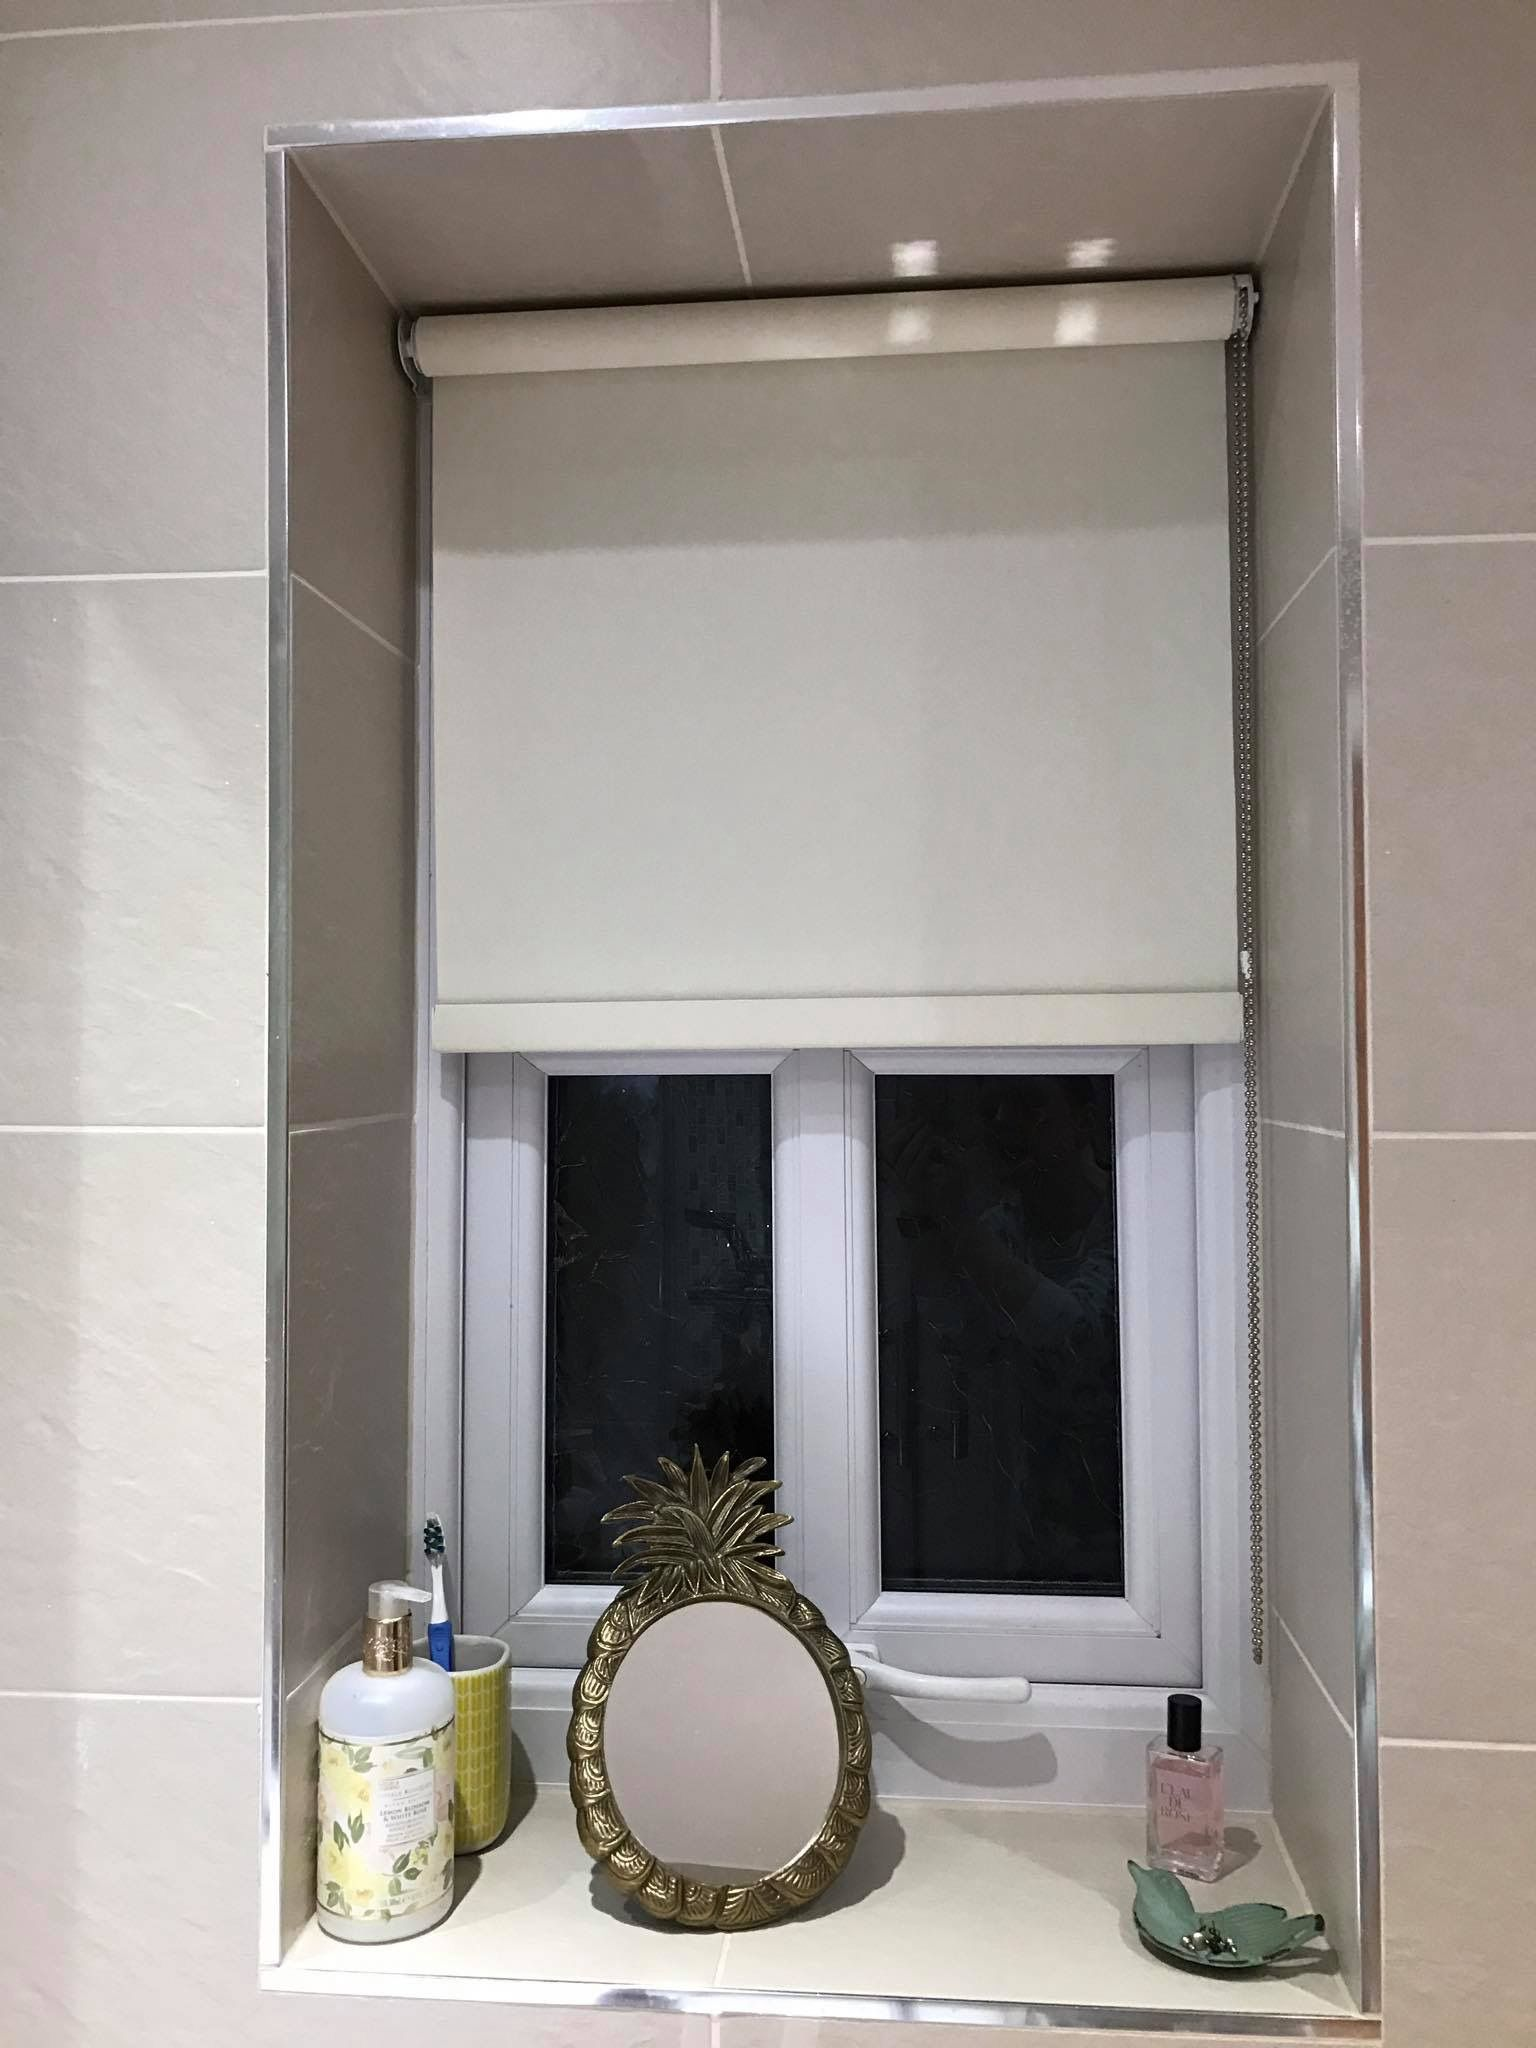 Some lovely bathroom blinds installed These are moisture resilient